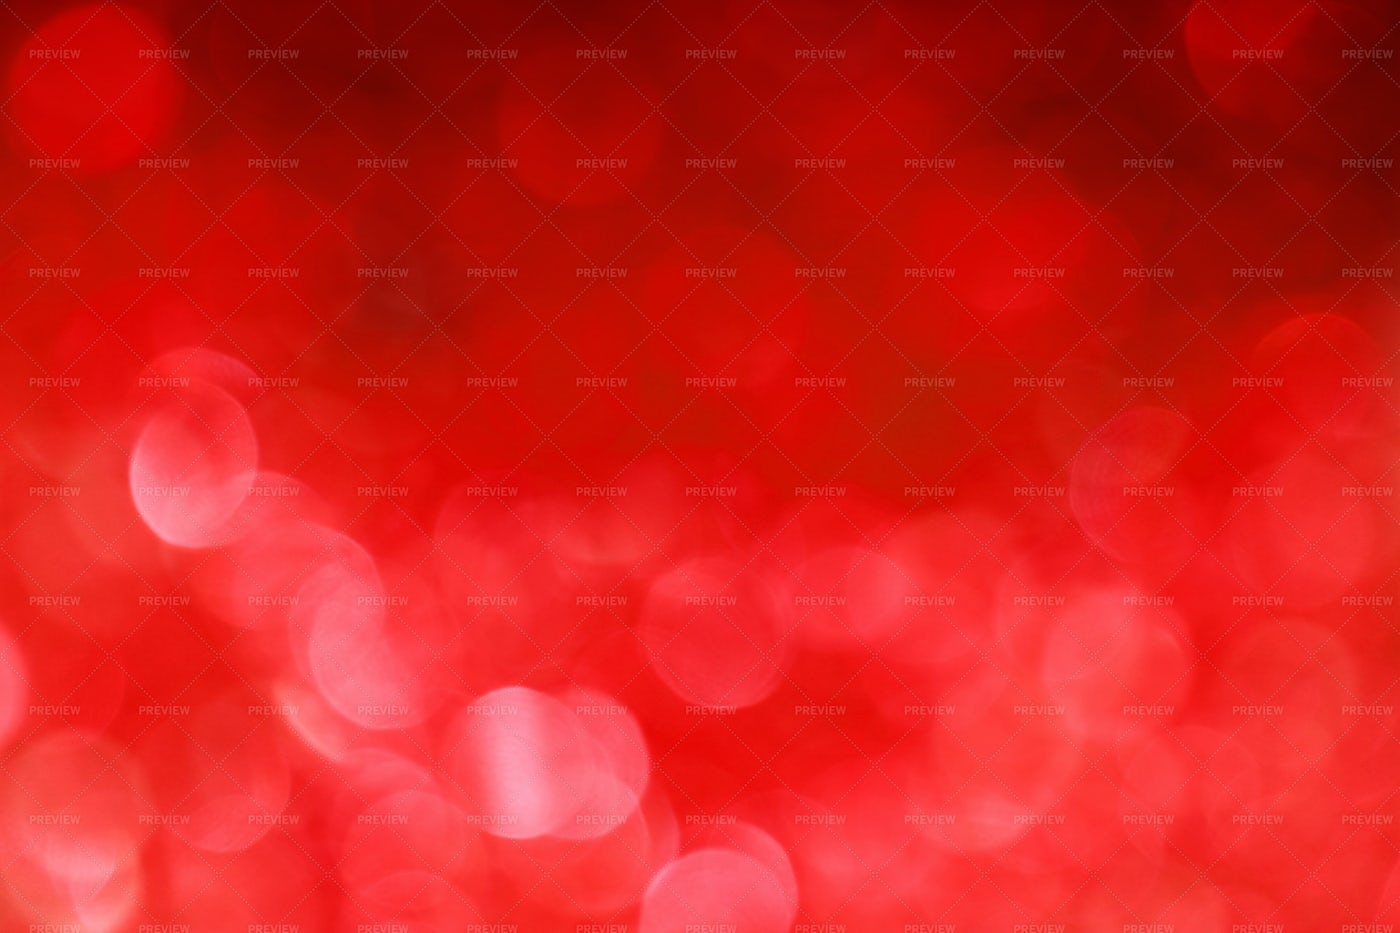 Red Bokeh Lights Abstract Background: Stock Photos